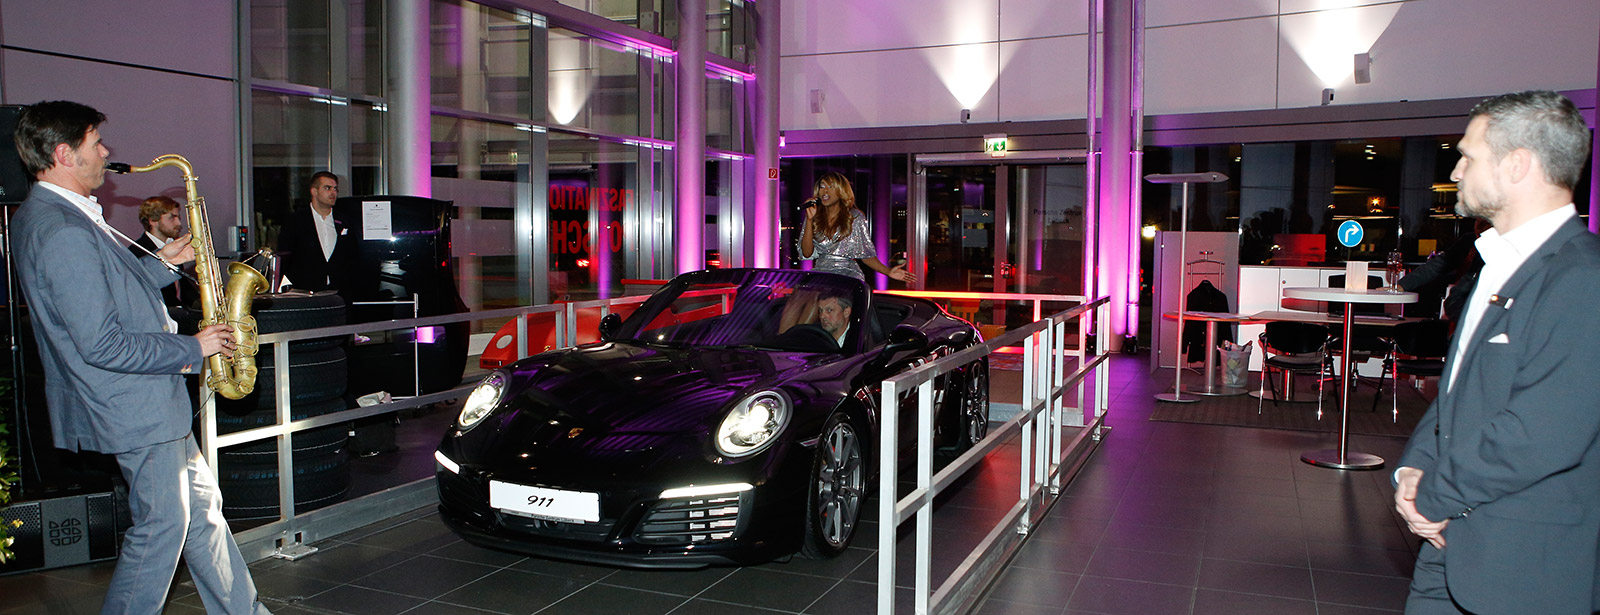 porsche zentrum l beck events 2015. Black Bedroom Furniture Sets. Home Design Ideas